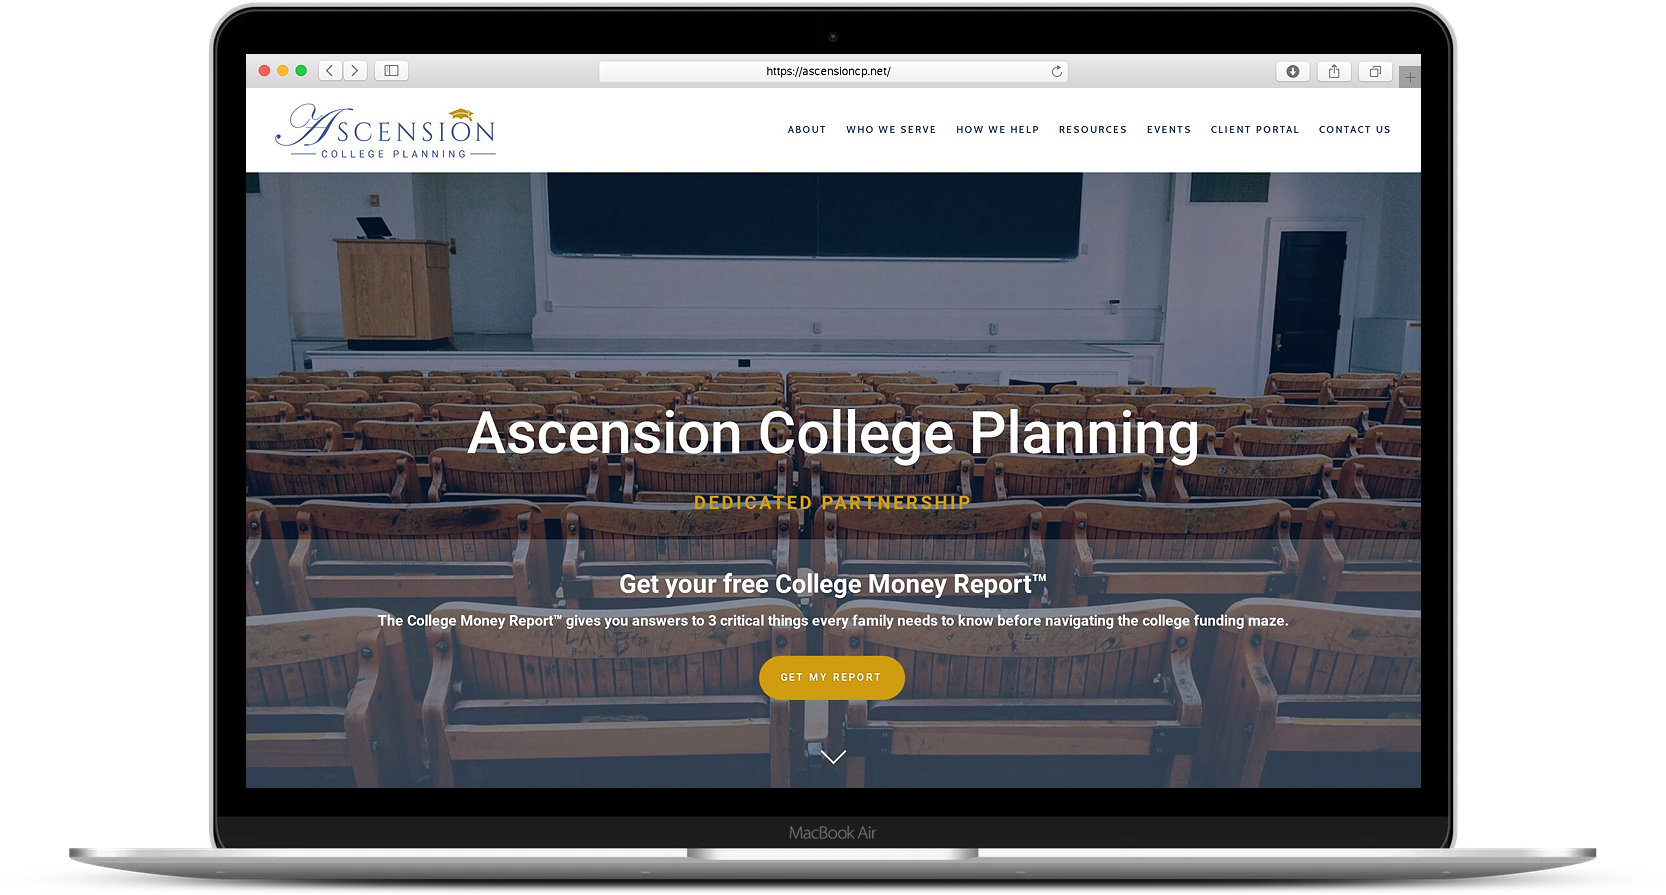 Ascension College Planning